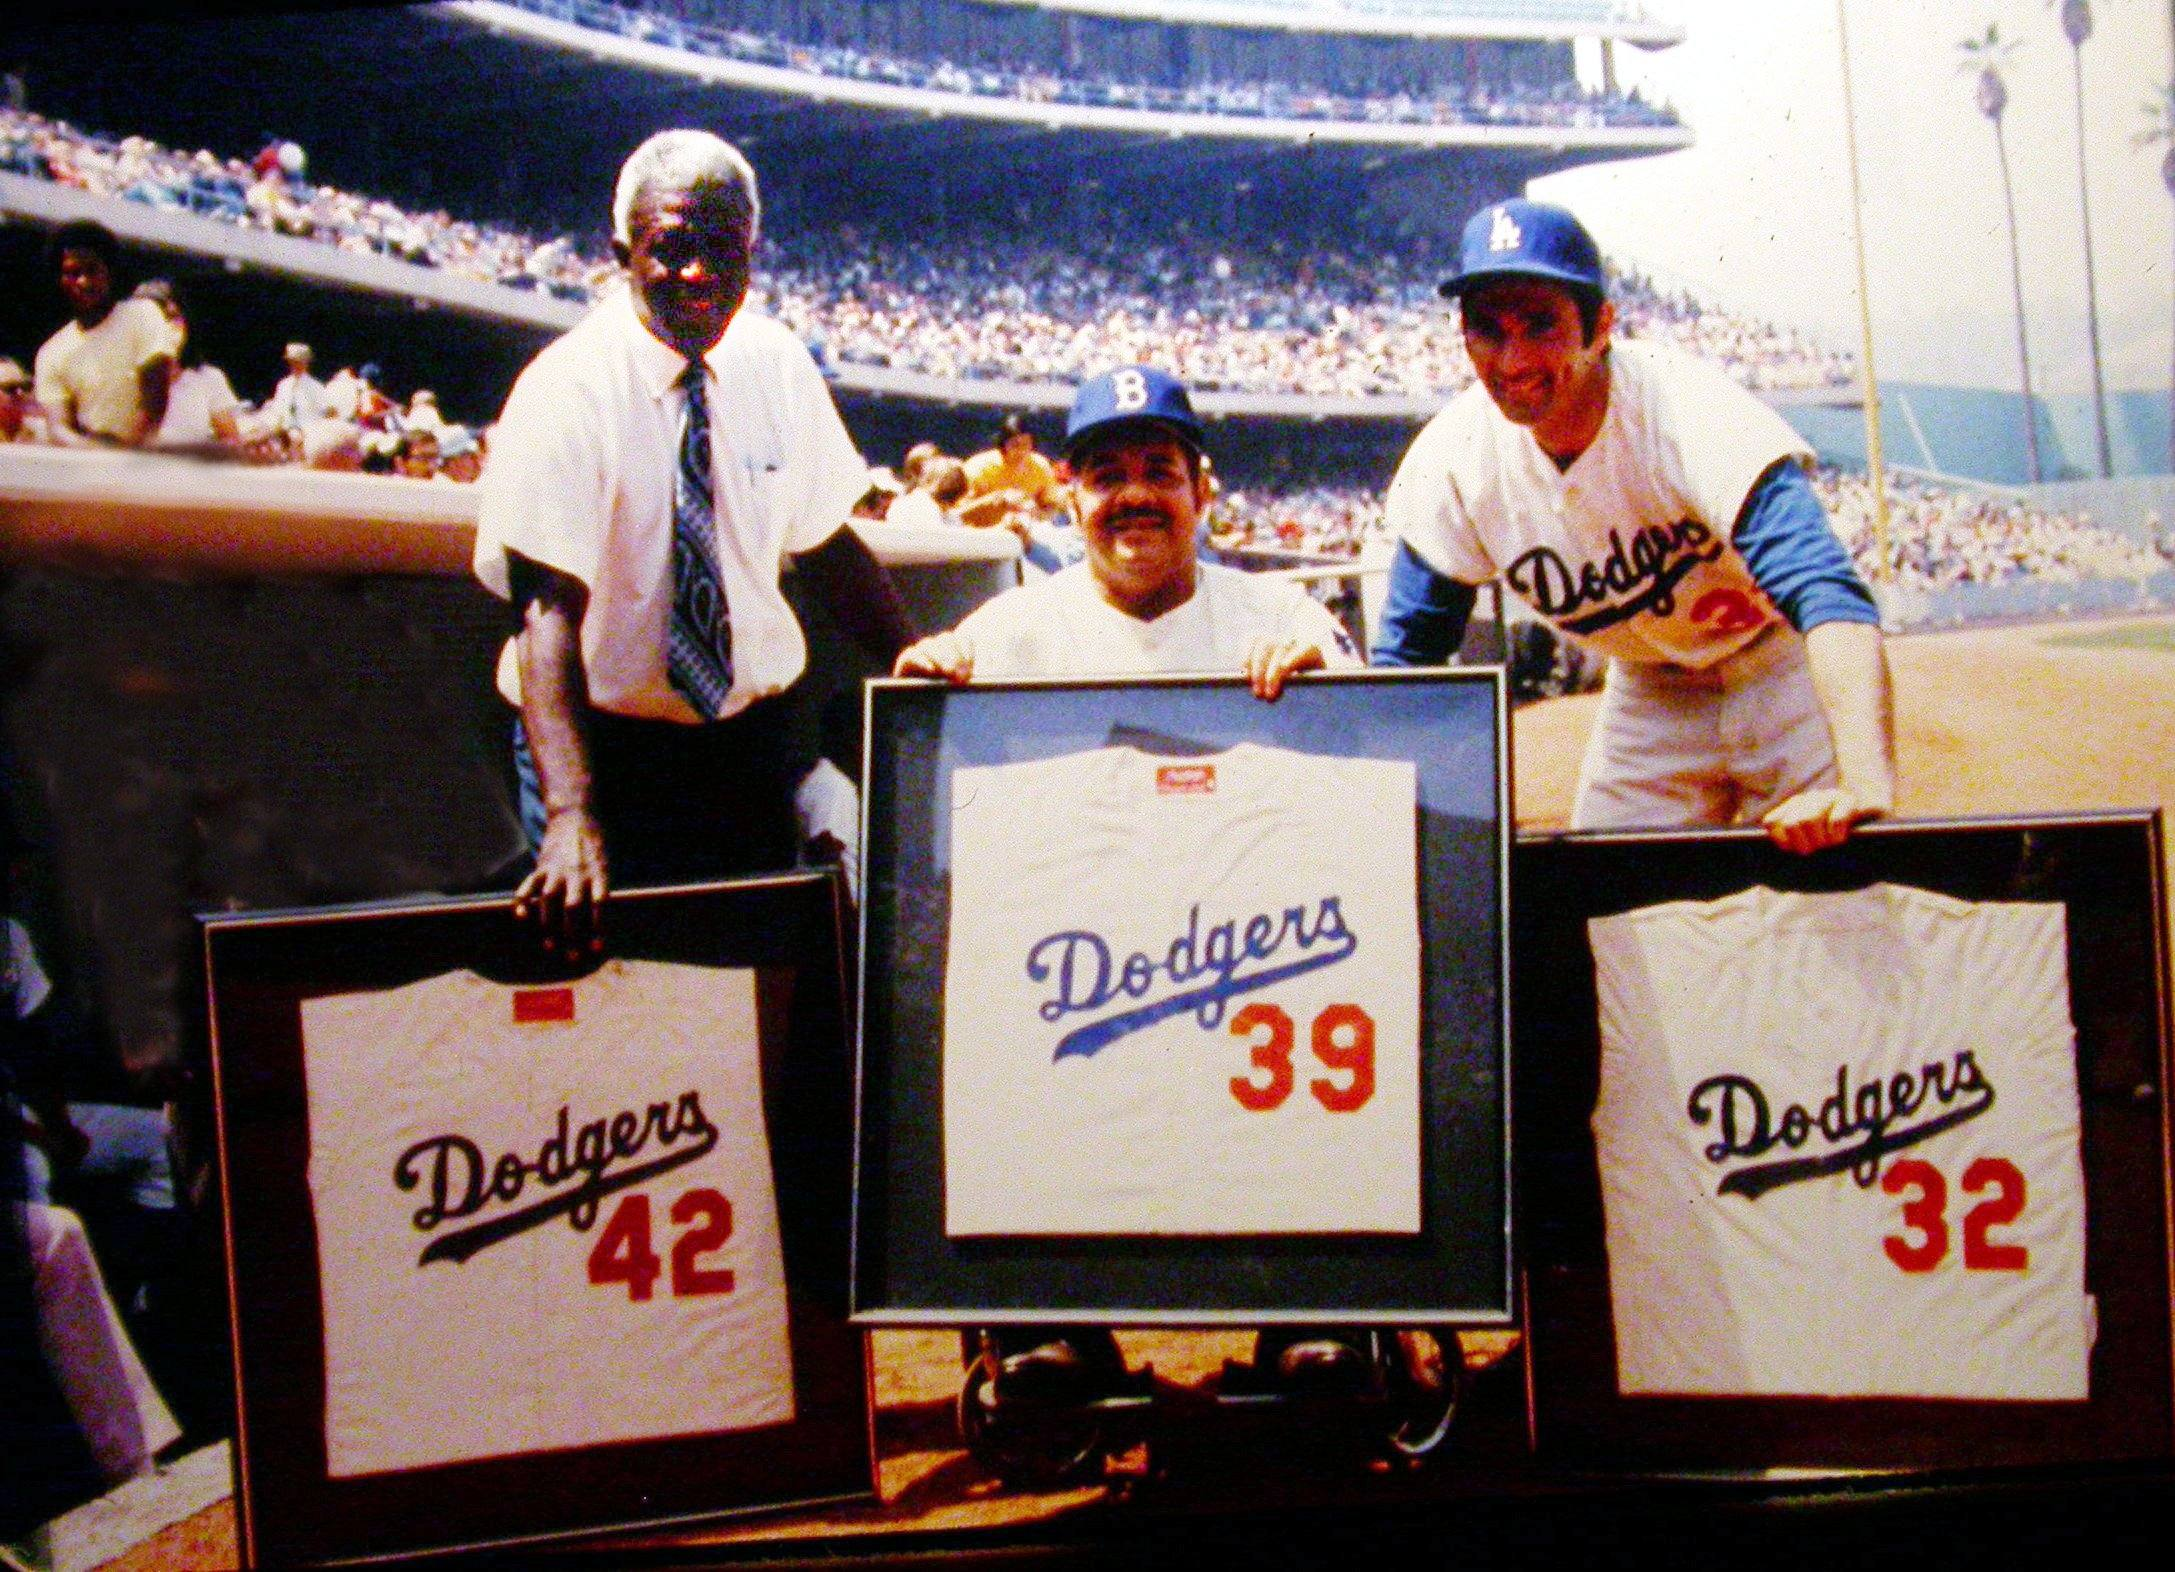 The Top 10 Greatest Moments in Dodger Stadium History